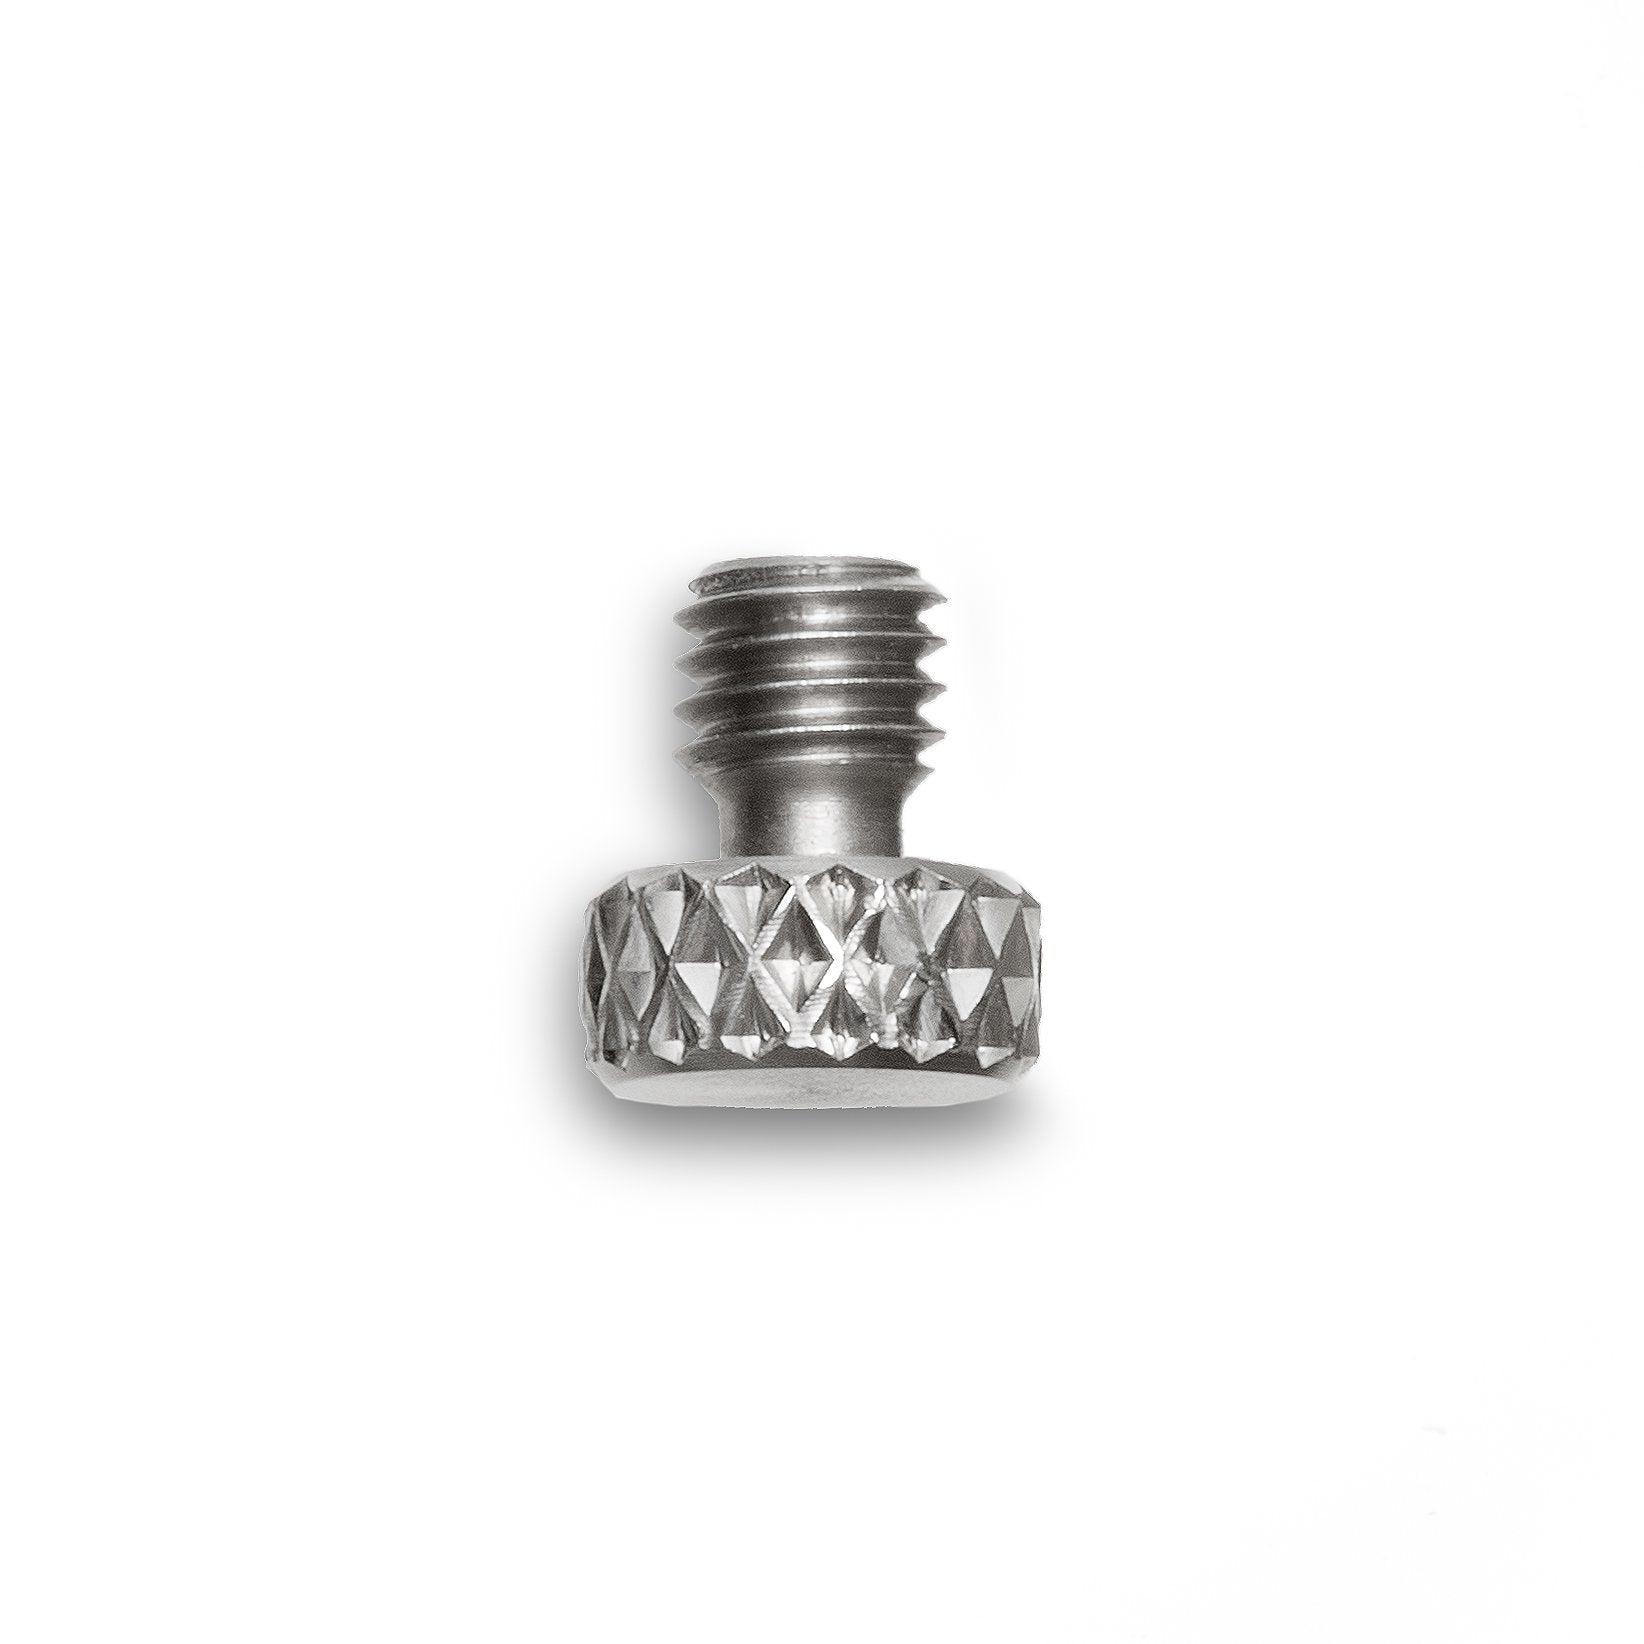 Jackknife Replacement Control Screw (for Chrome Jackknife and Prior Models) - S-6-O